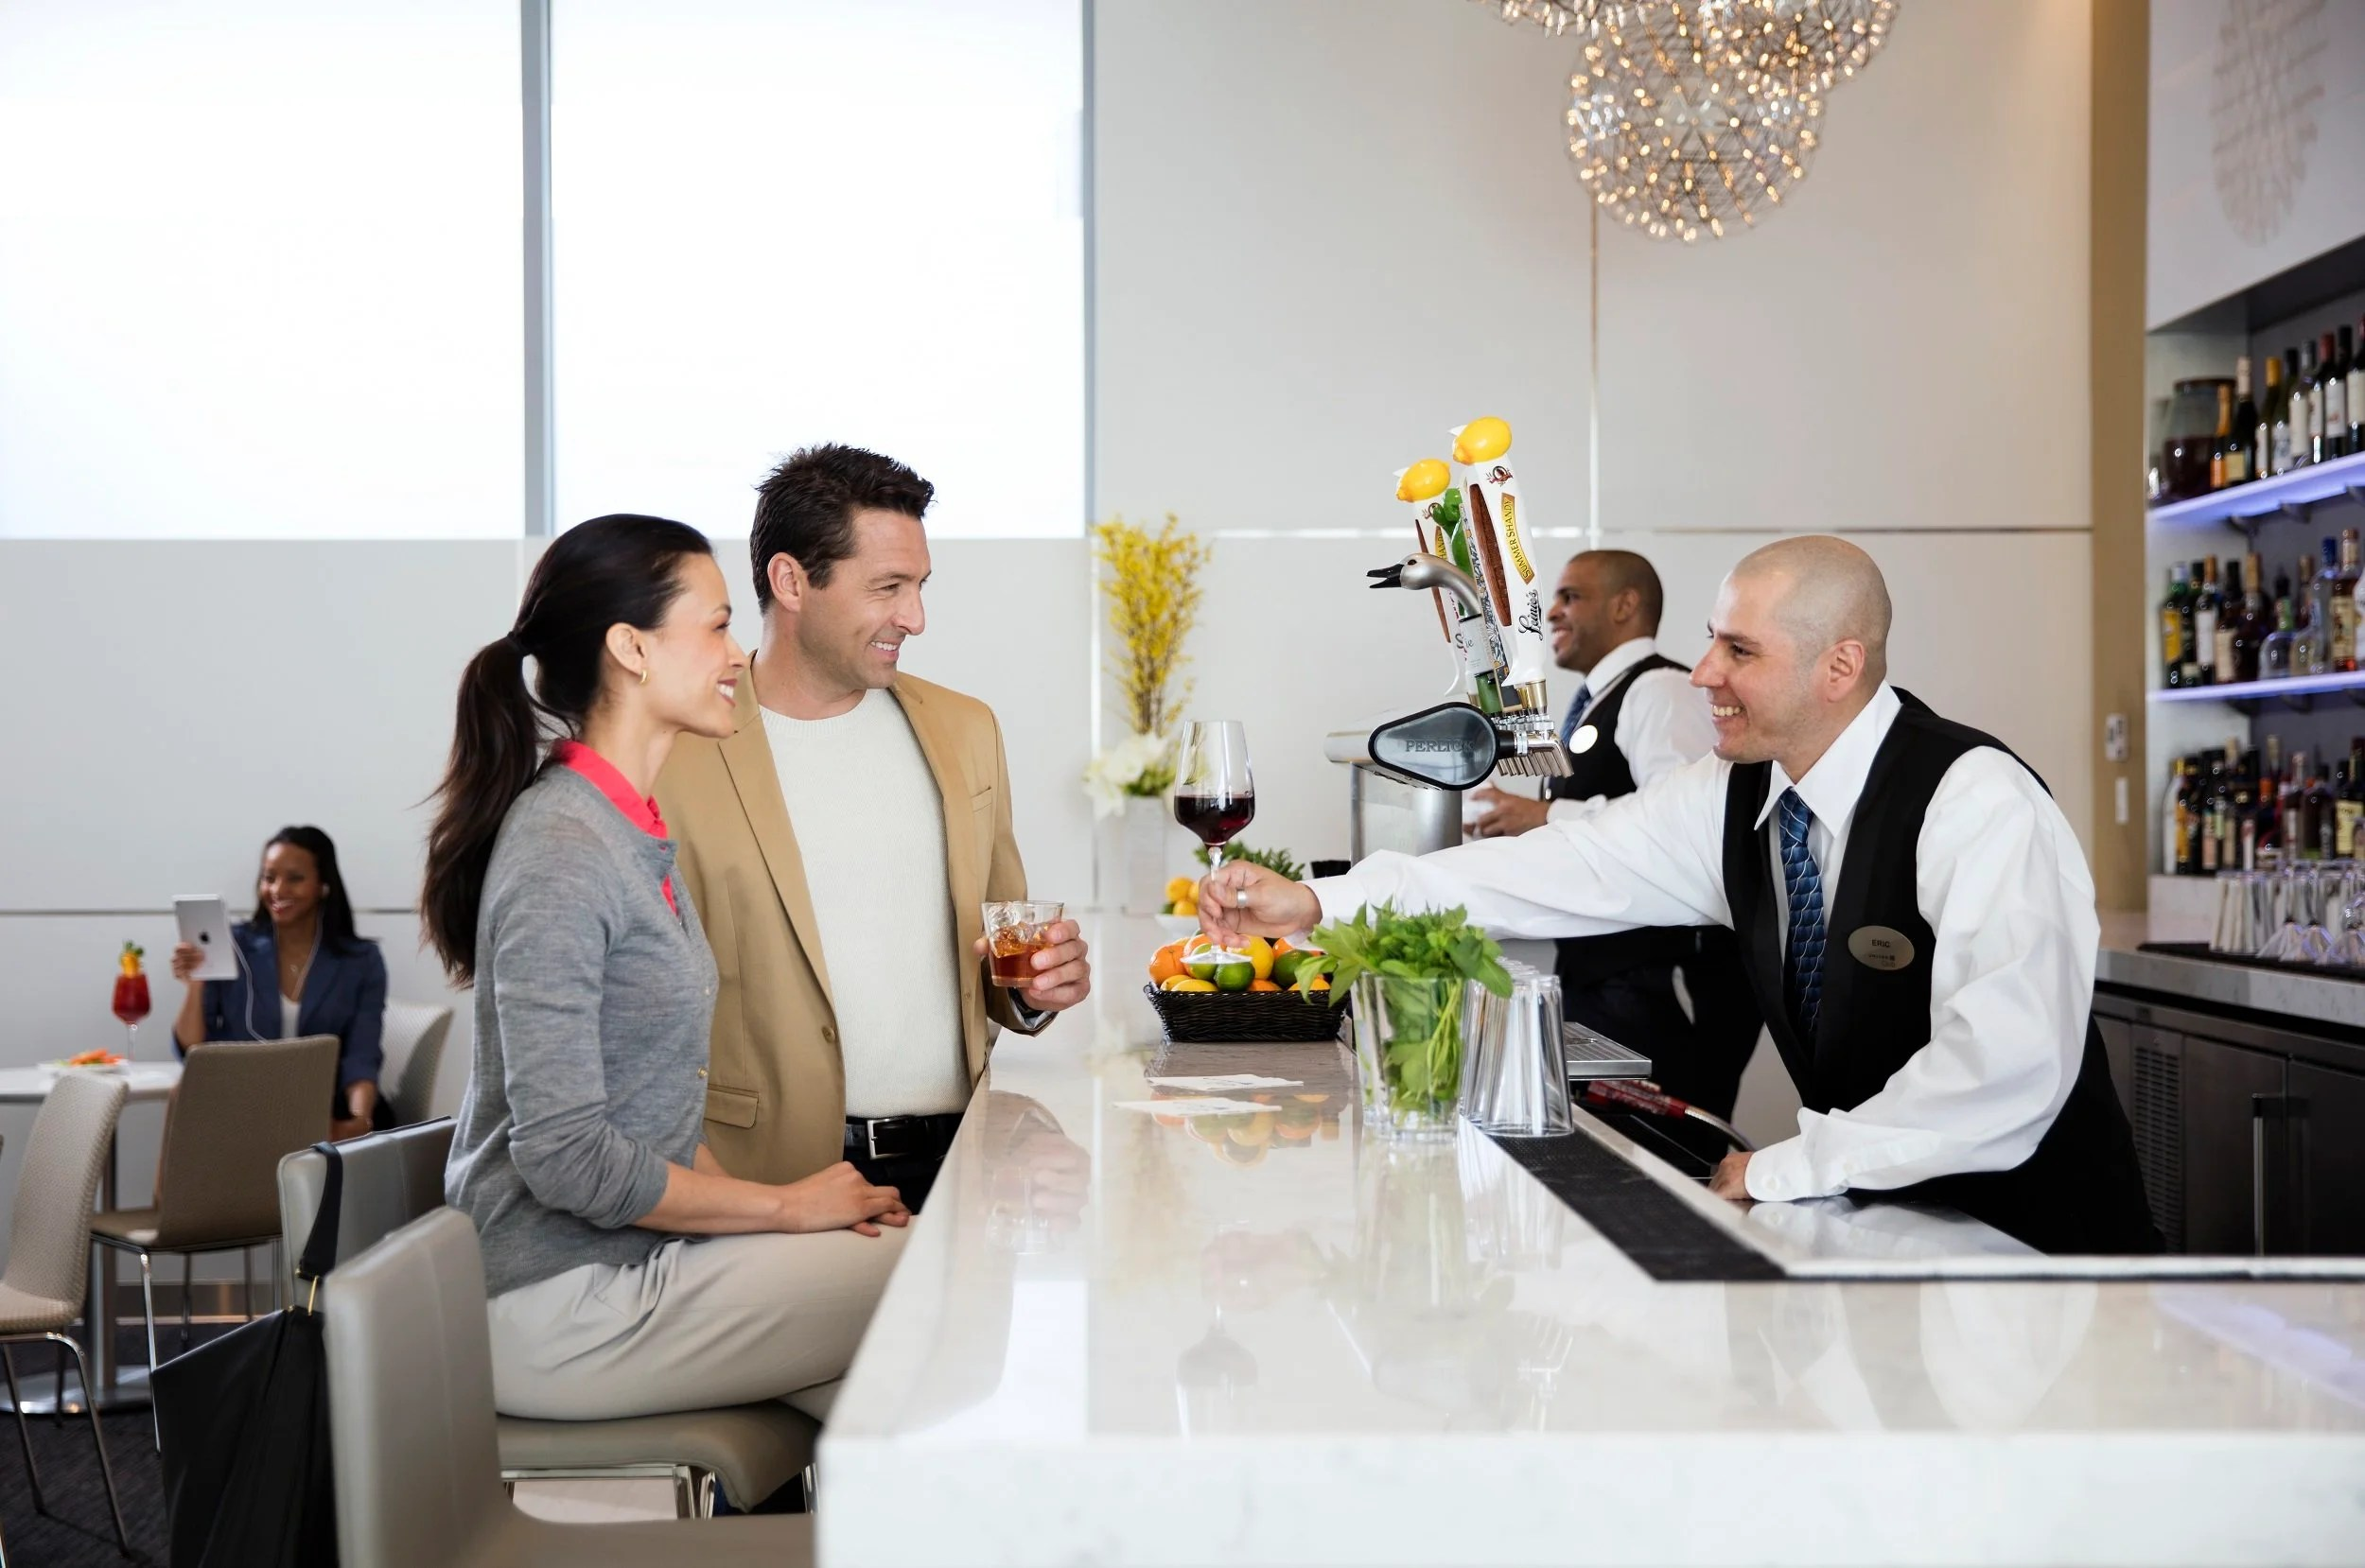 Do you need to tip servers in airport lounges?